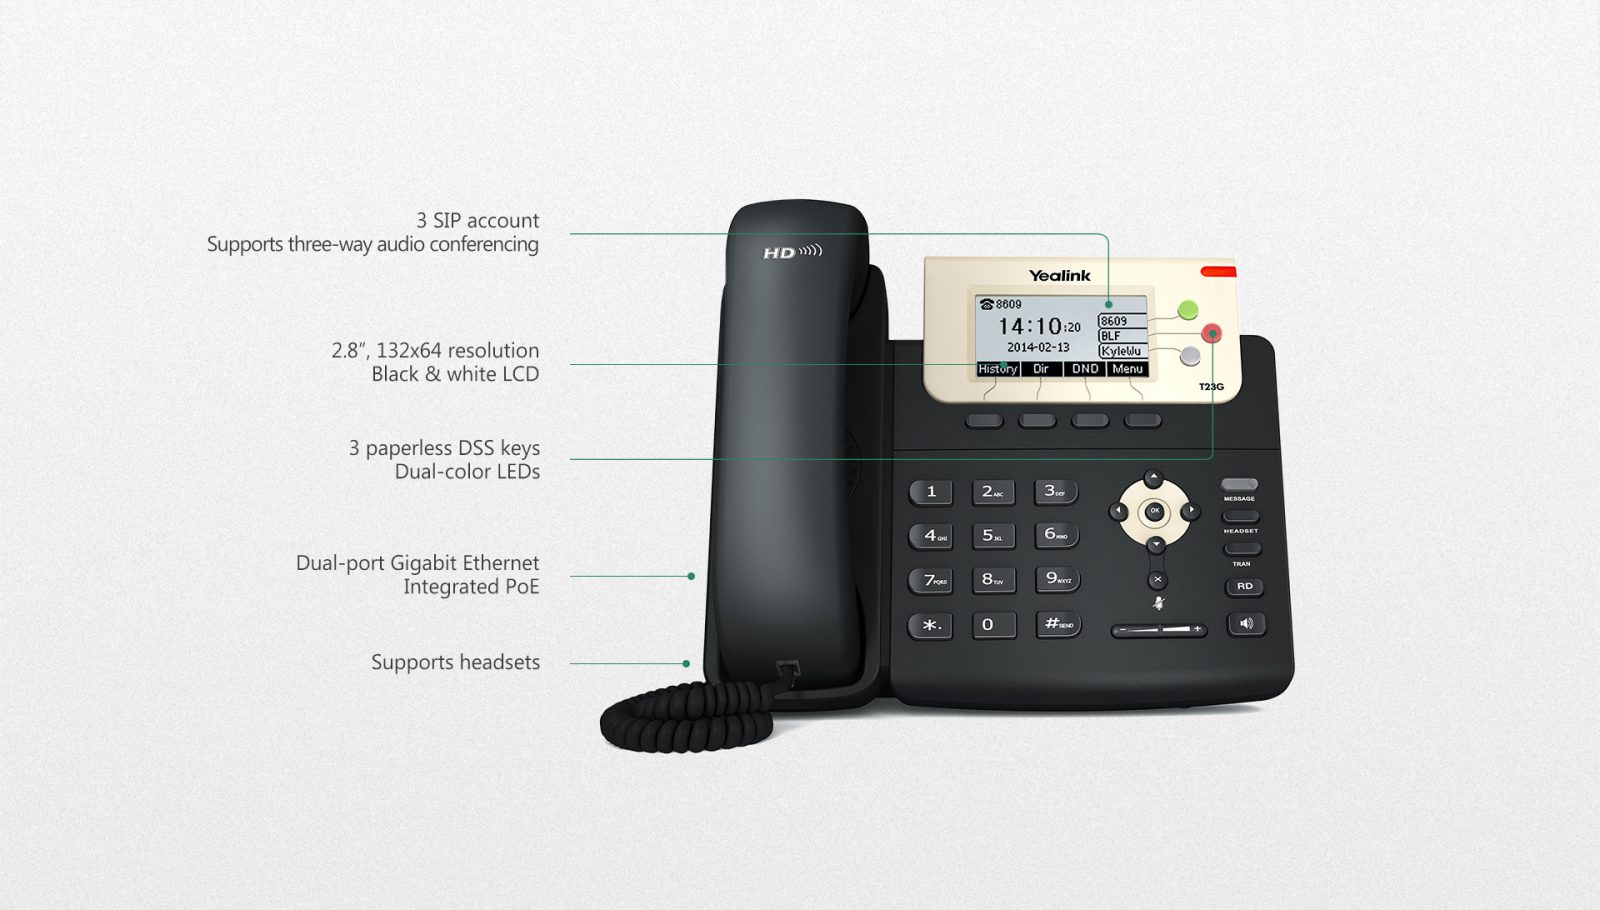 Yealink T23G IP Phone - Hong Kong Hotline: 39001988 - Matrix Technology (HK) Ltd